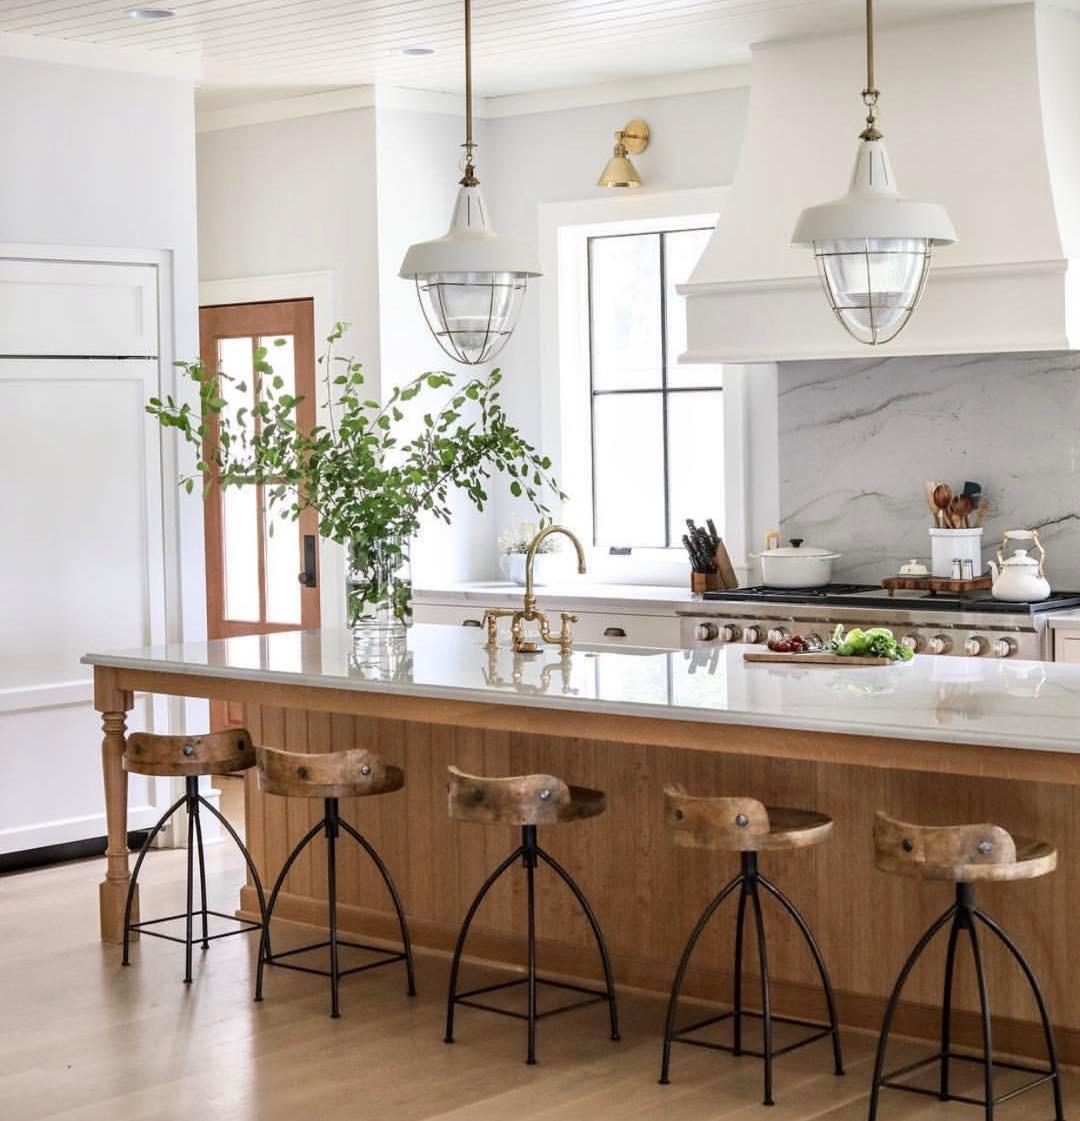 Inspiring Kitchen Design Ideas For Your Home - Page 9 of 35 - Liatsy Fashion